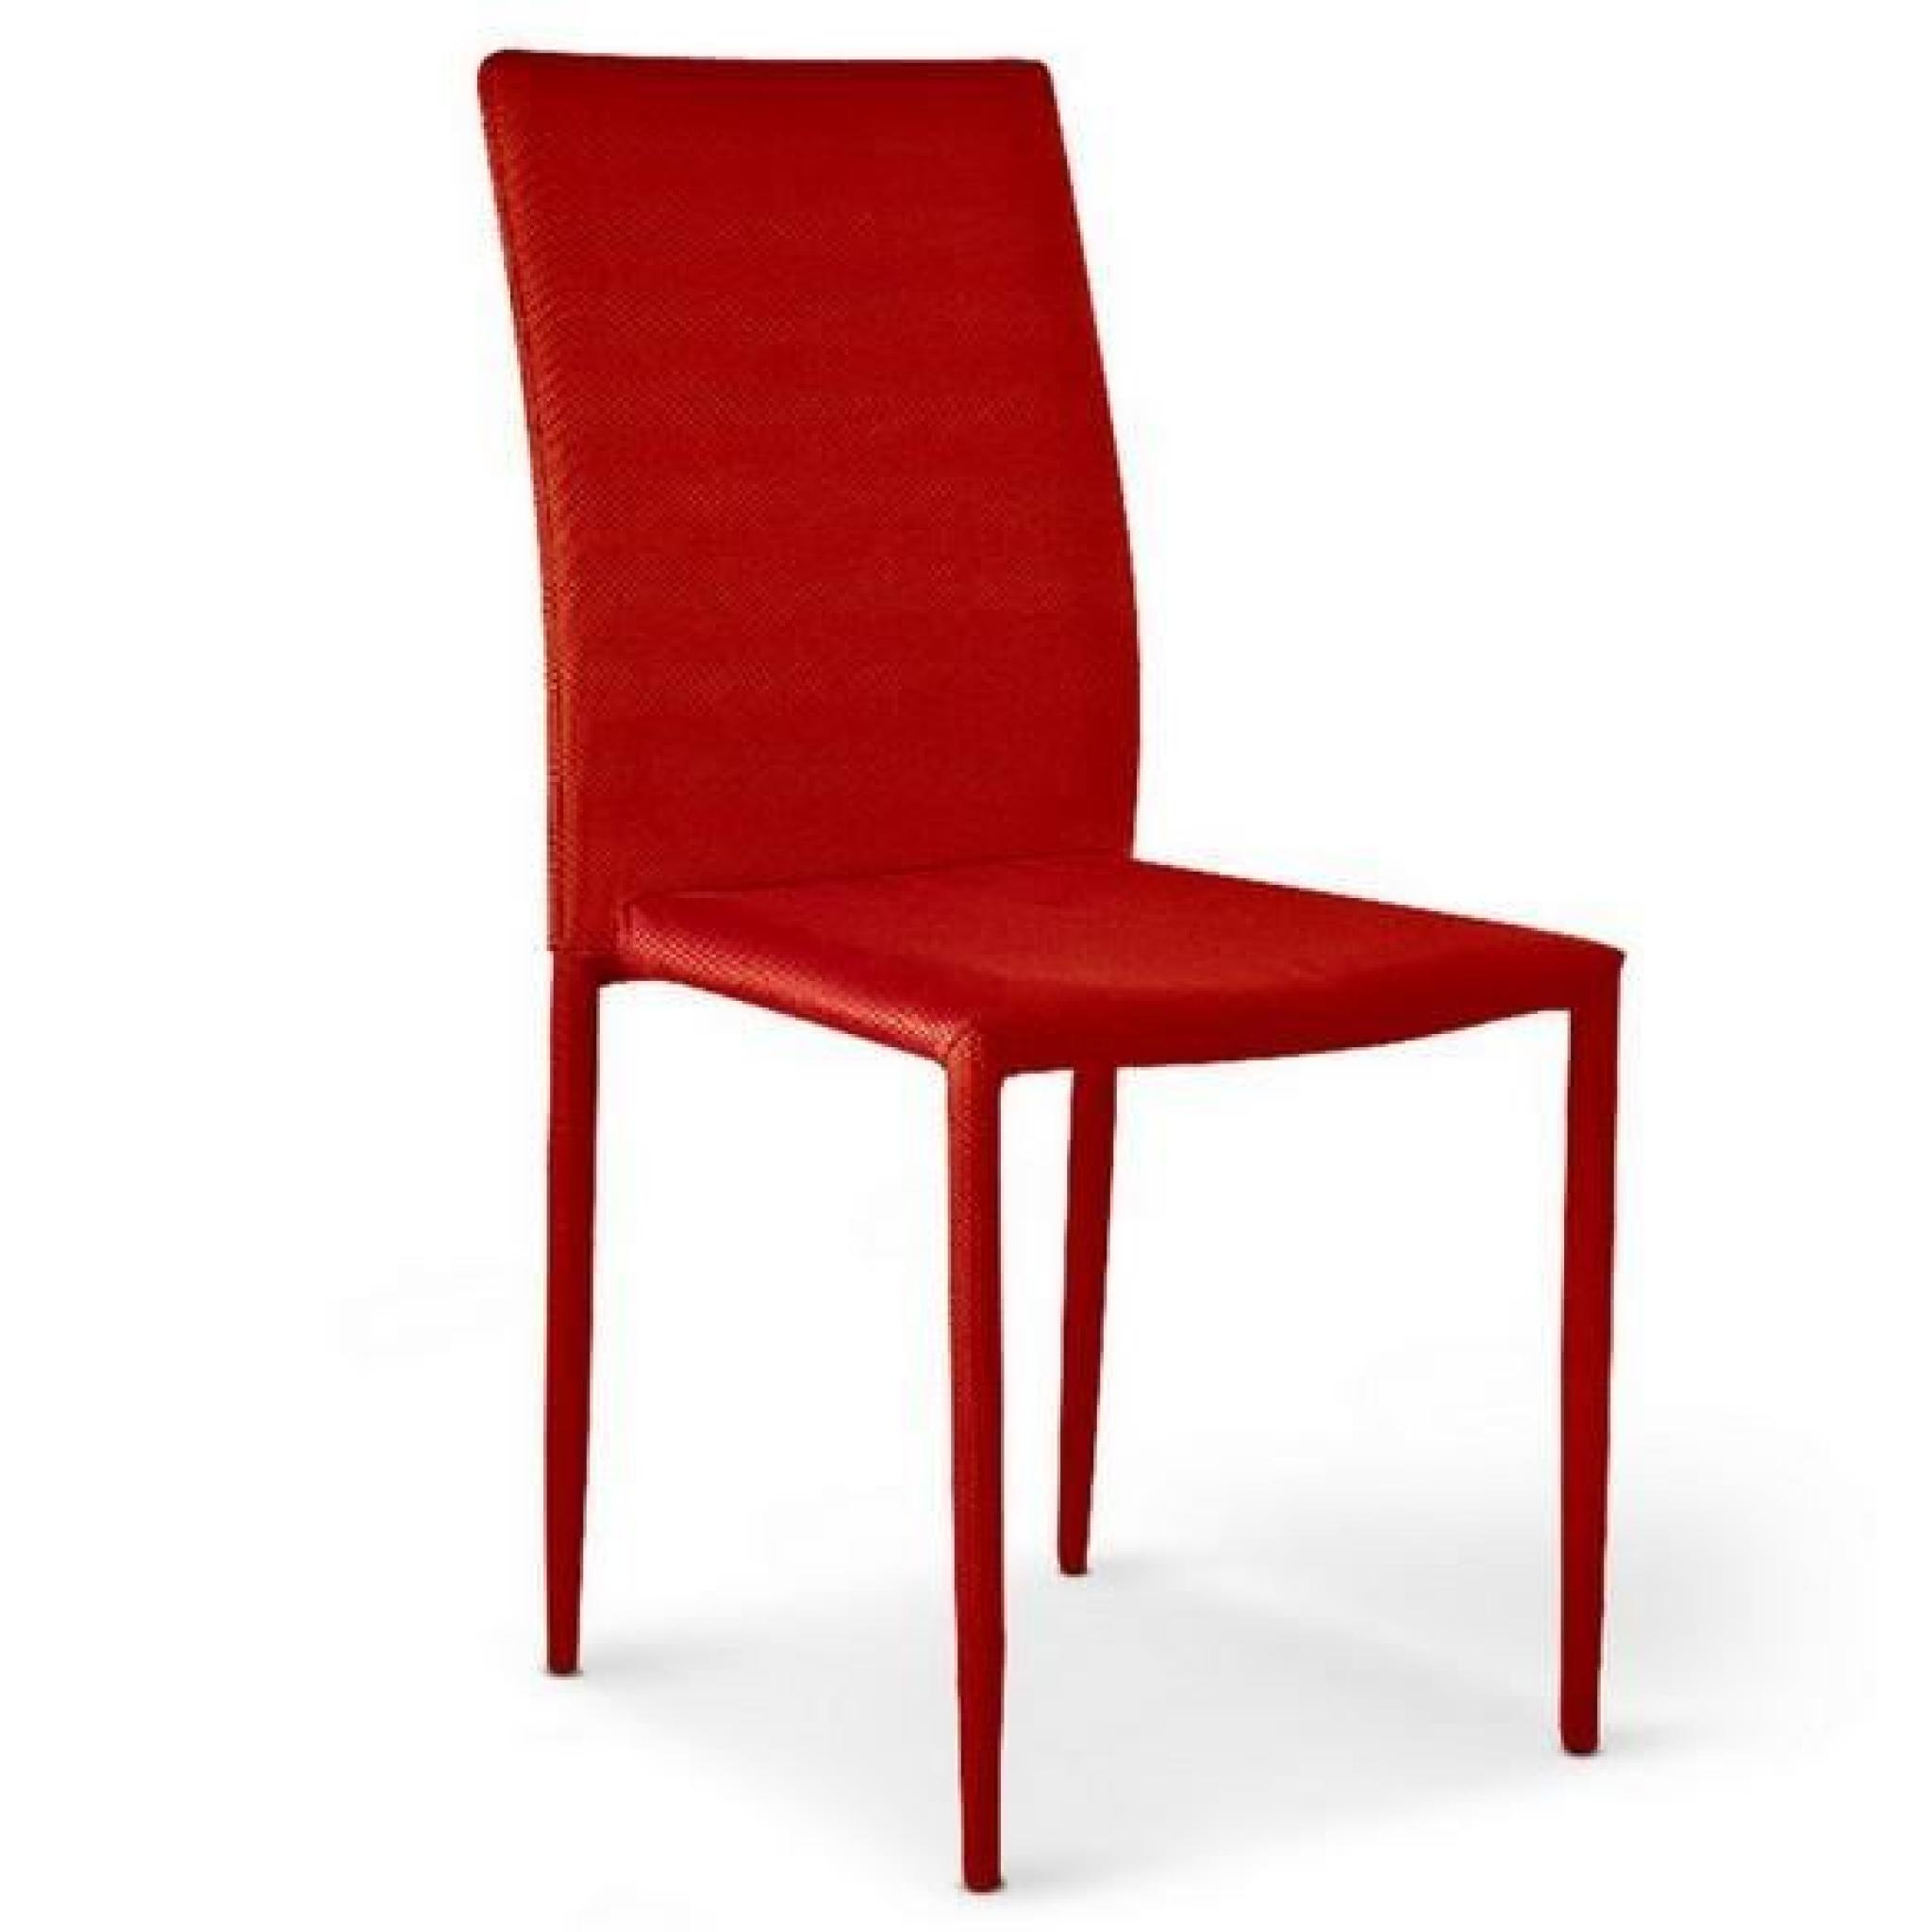 Rouge Chaises 6 Lot De Empilables Maudy gYfb76y